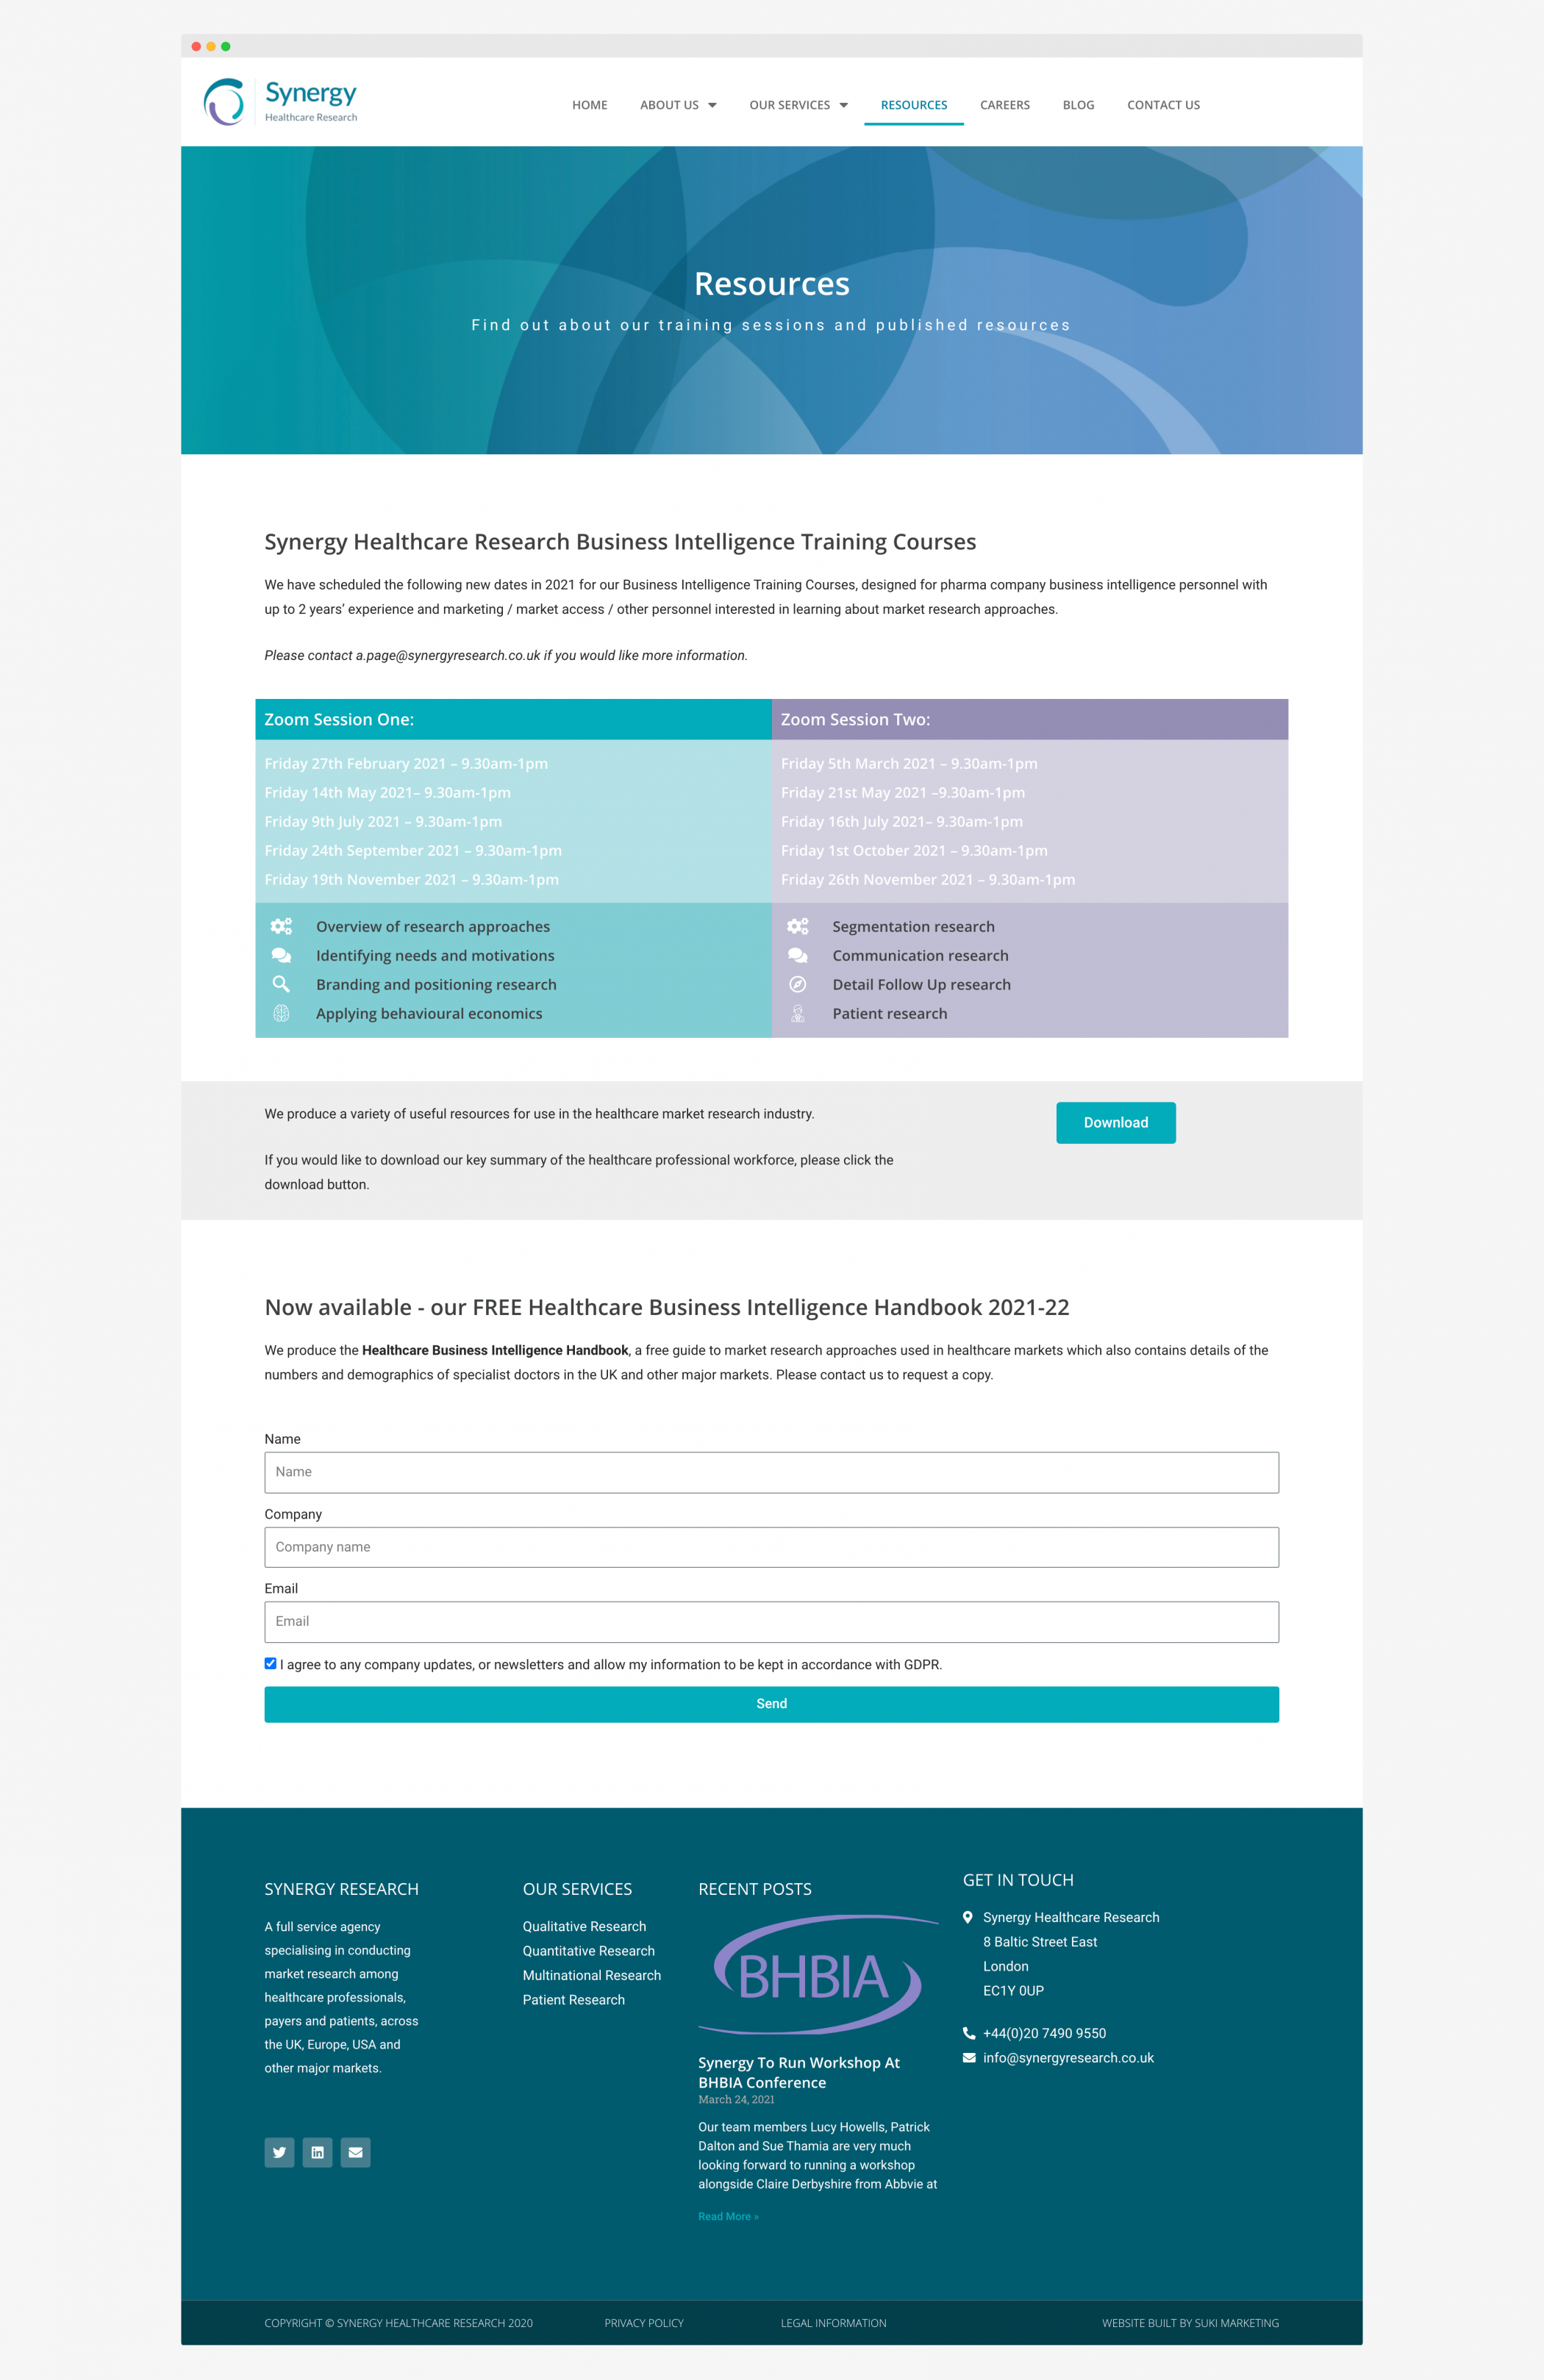 Synergy Market Research Healthcare Website Responsive Design